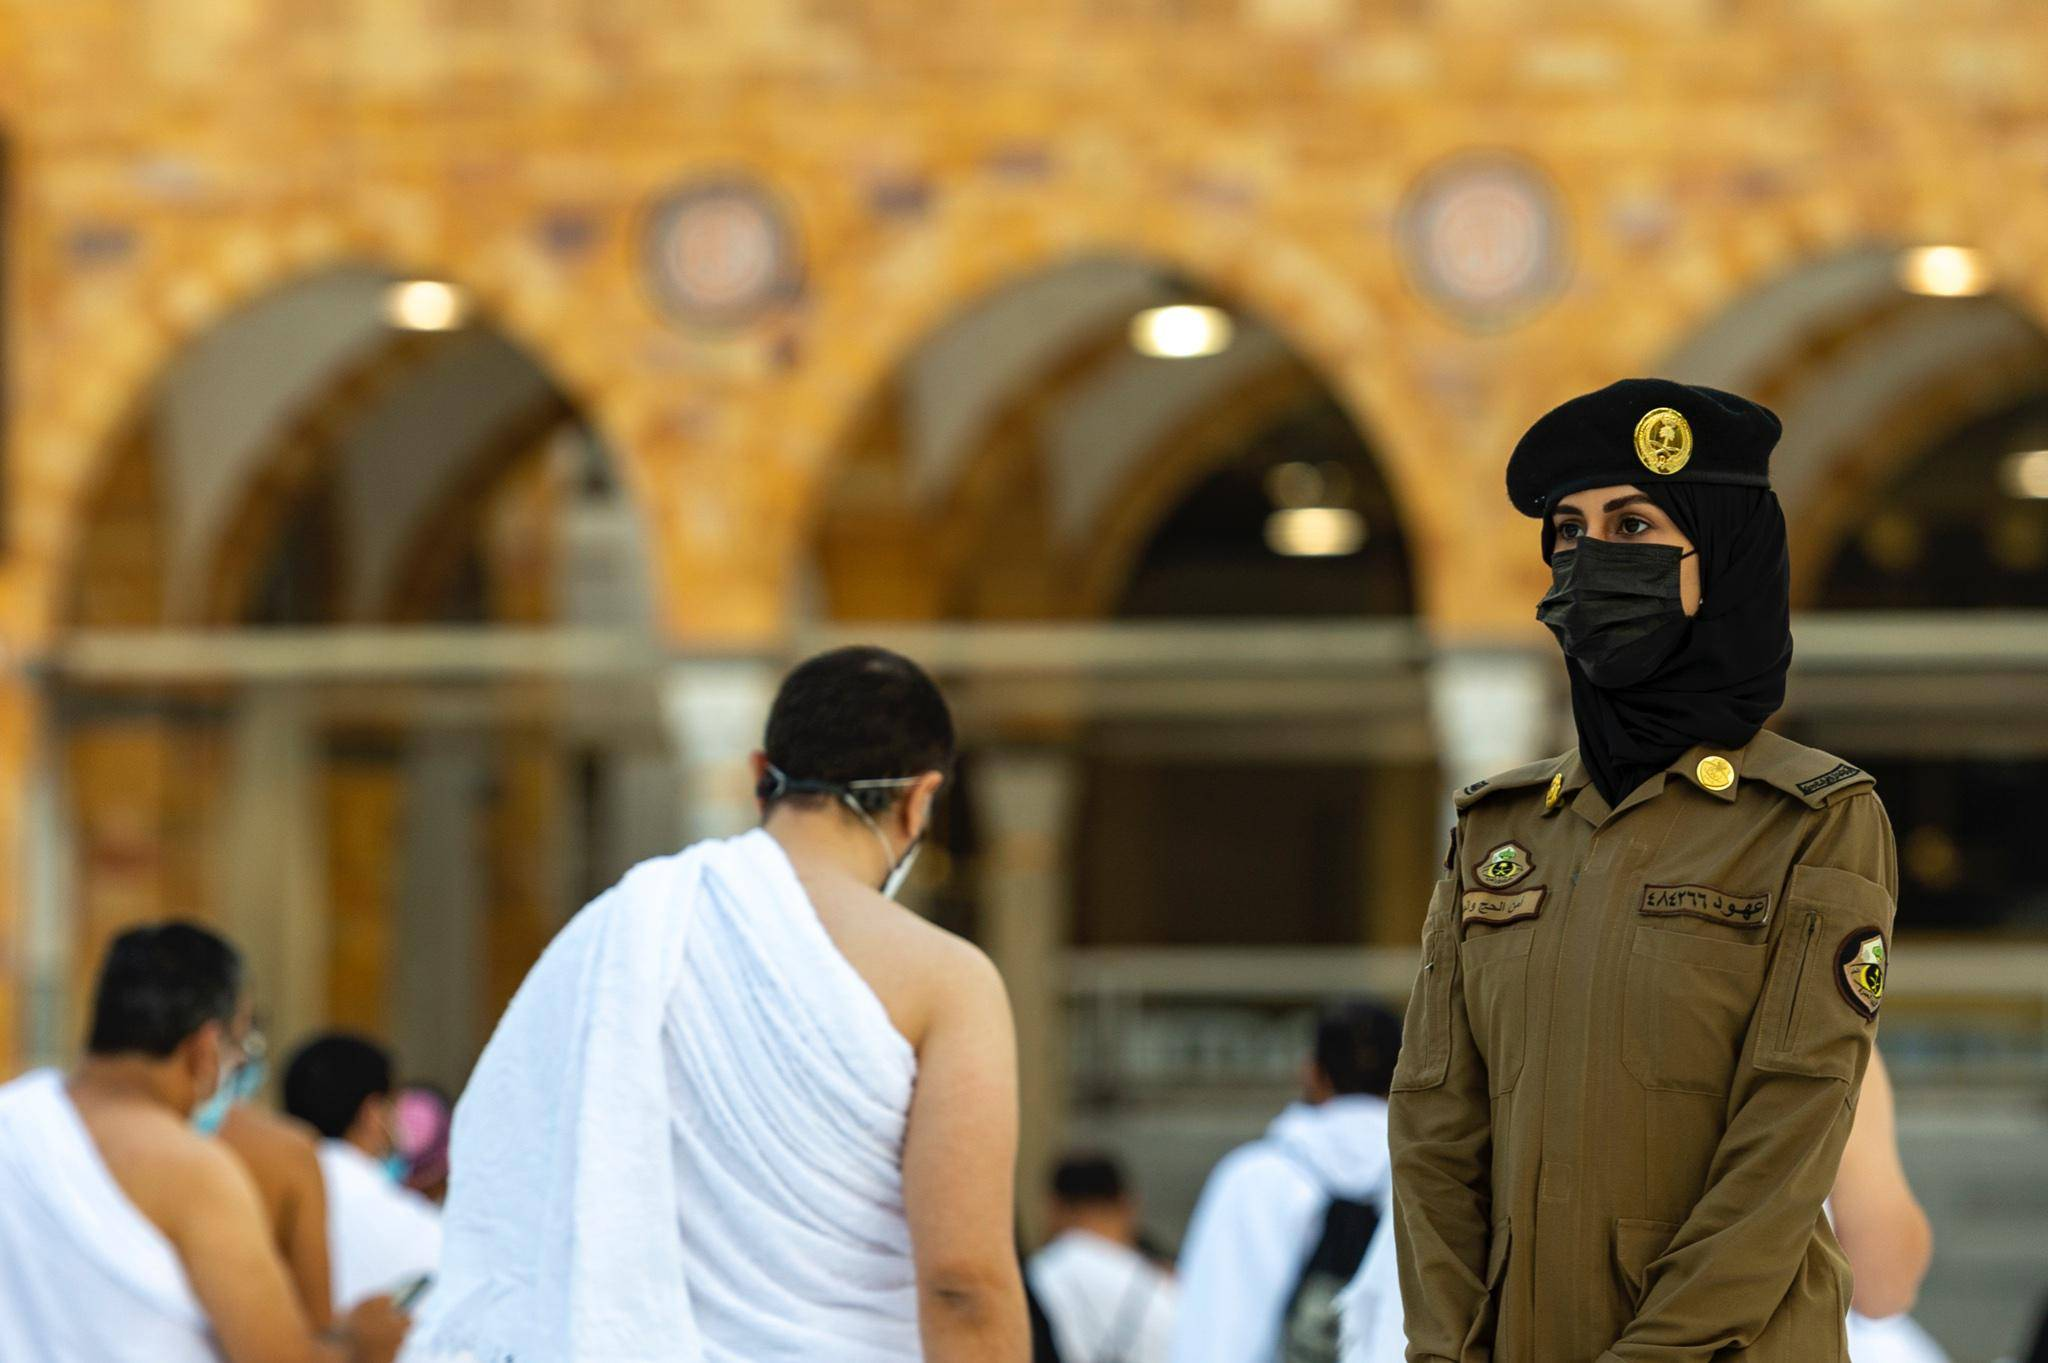 Look: Women guards on duty at Saudi Arabia's Grand Mosque